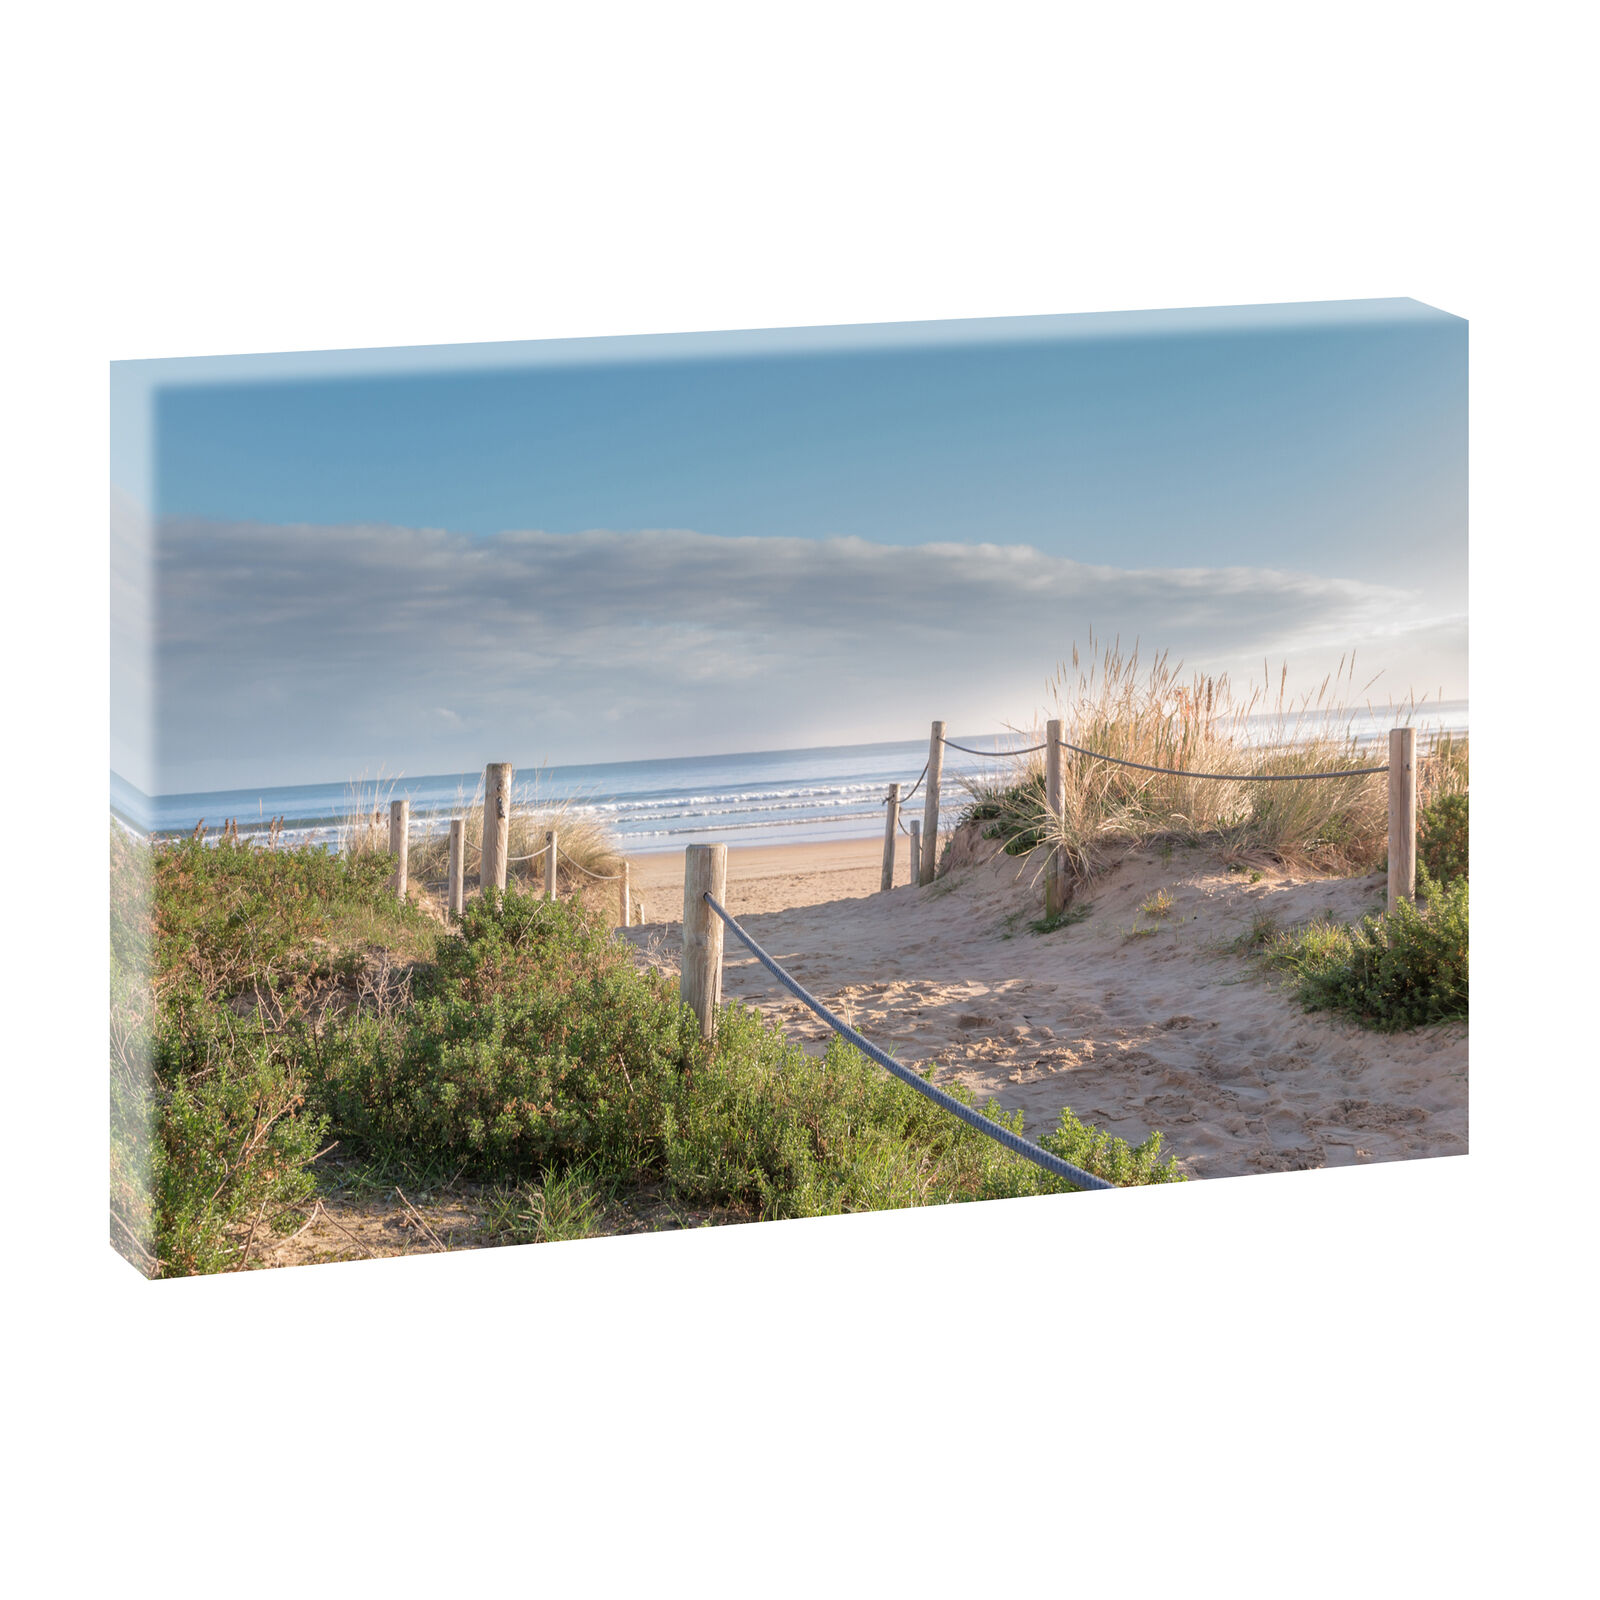 bilder auf leinwand poster wandbild strand d nen nordsee xxl 120 cm 80 cm 732 eur 32 78. Black Bedroom Furniture Sets. Home Design Ideas